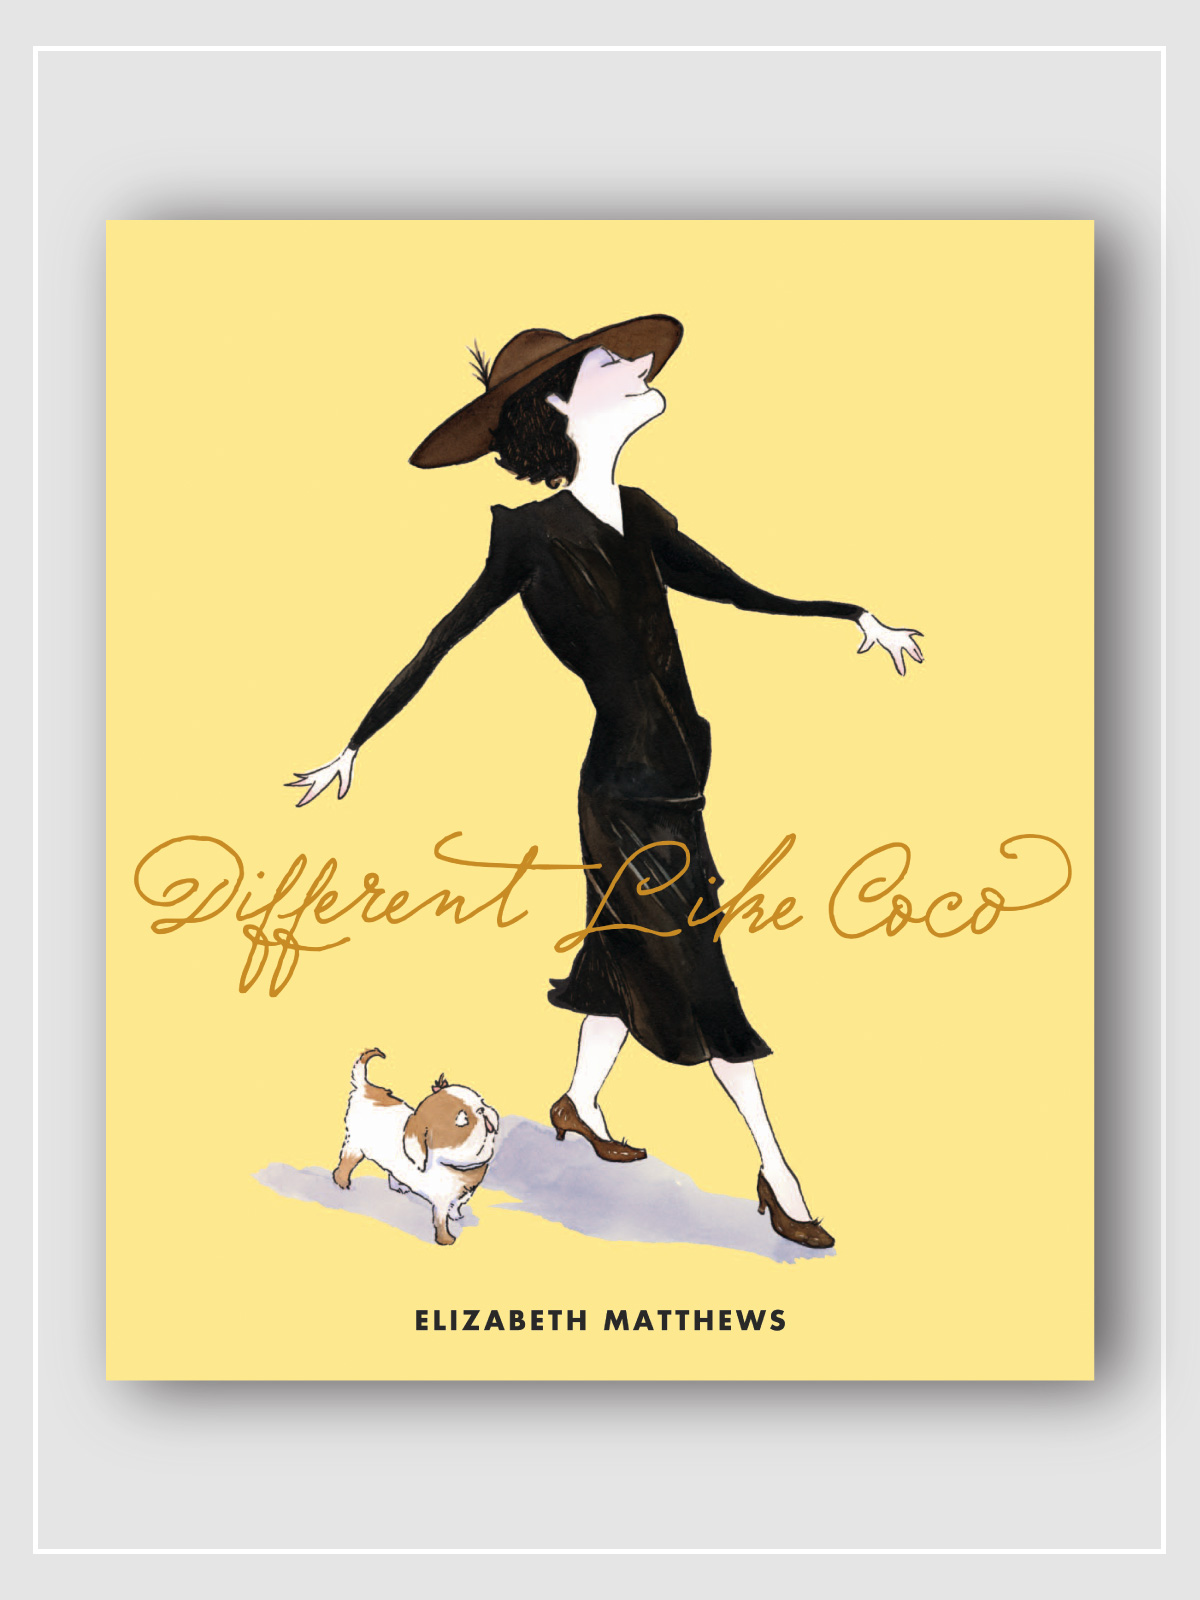 frederickandsophie-books-Different-like-Coco-Elizabeth-Matthews